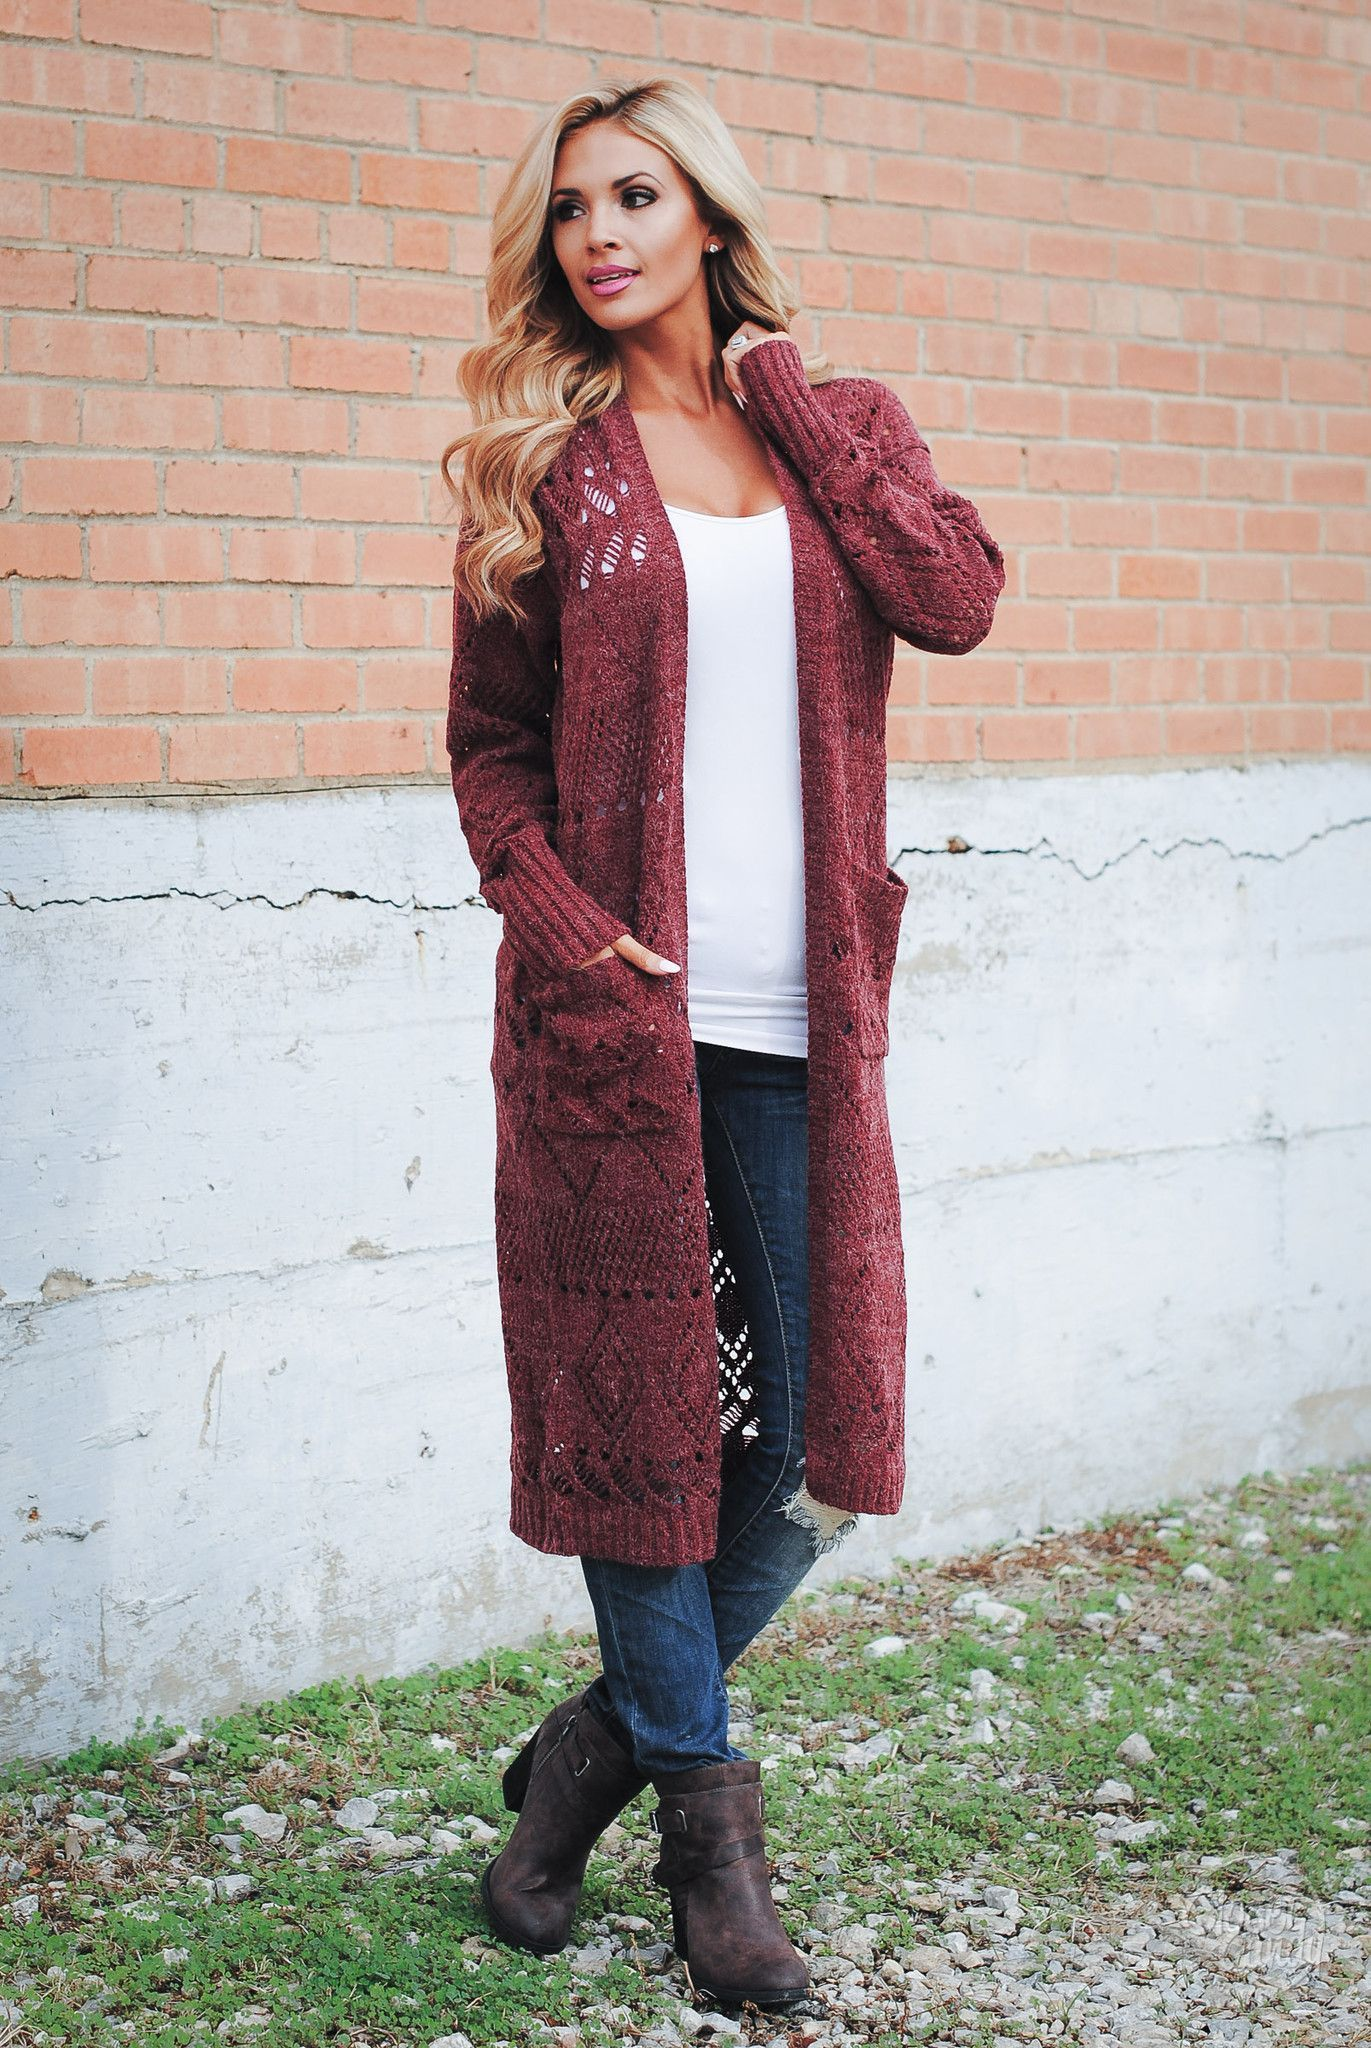 Best Is Yet To Come Duster Cardigan - Burgundy | Fashion ...